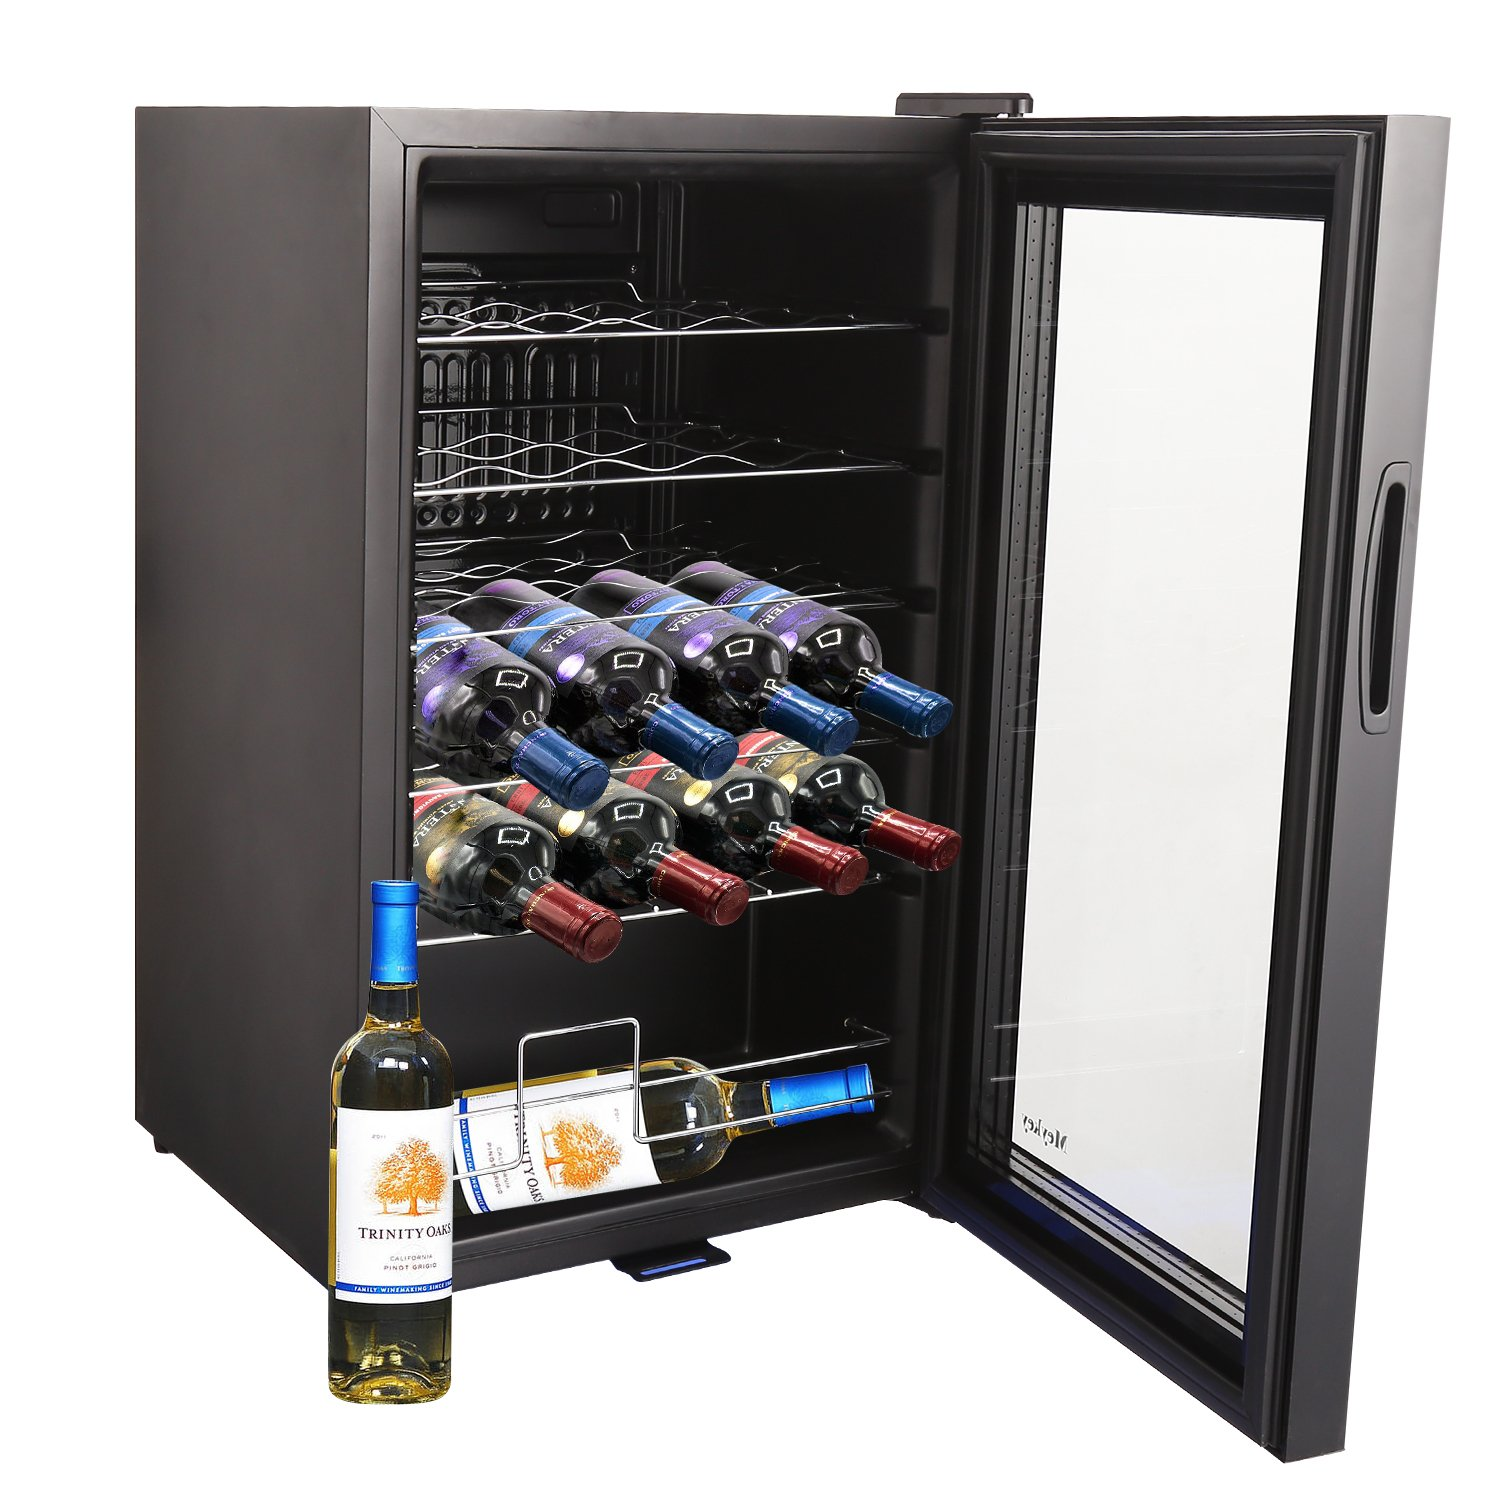 24 Bottle Thermoelectric Wine Cooler Standing Compressor Counter Top Refrigerator(US STOCK) by MeyKey (Image #4)